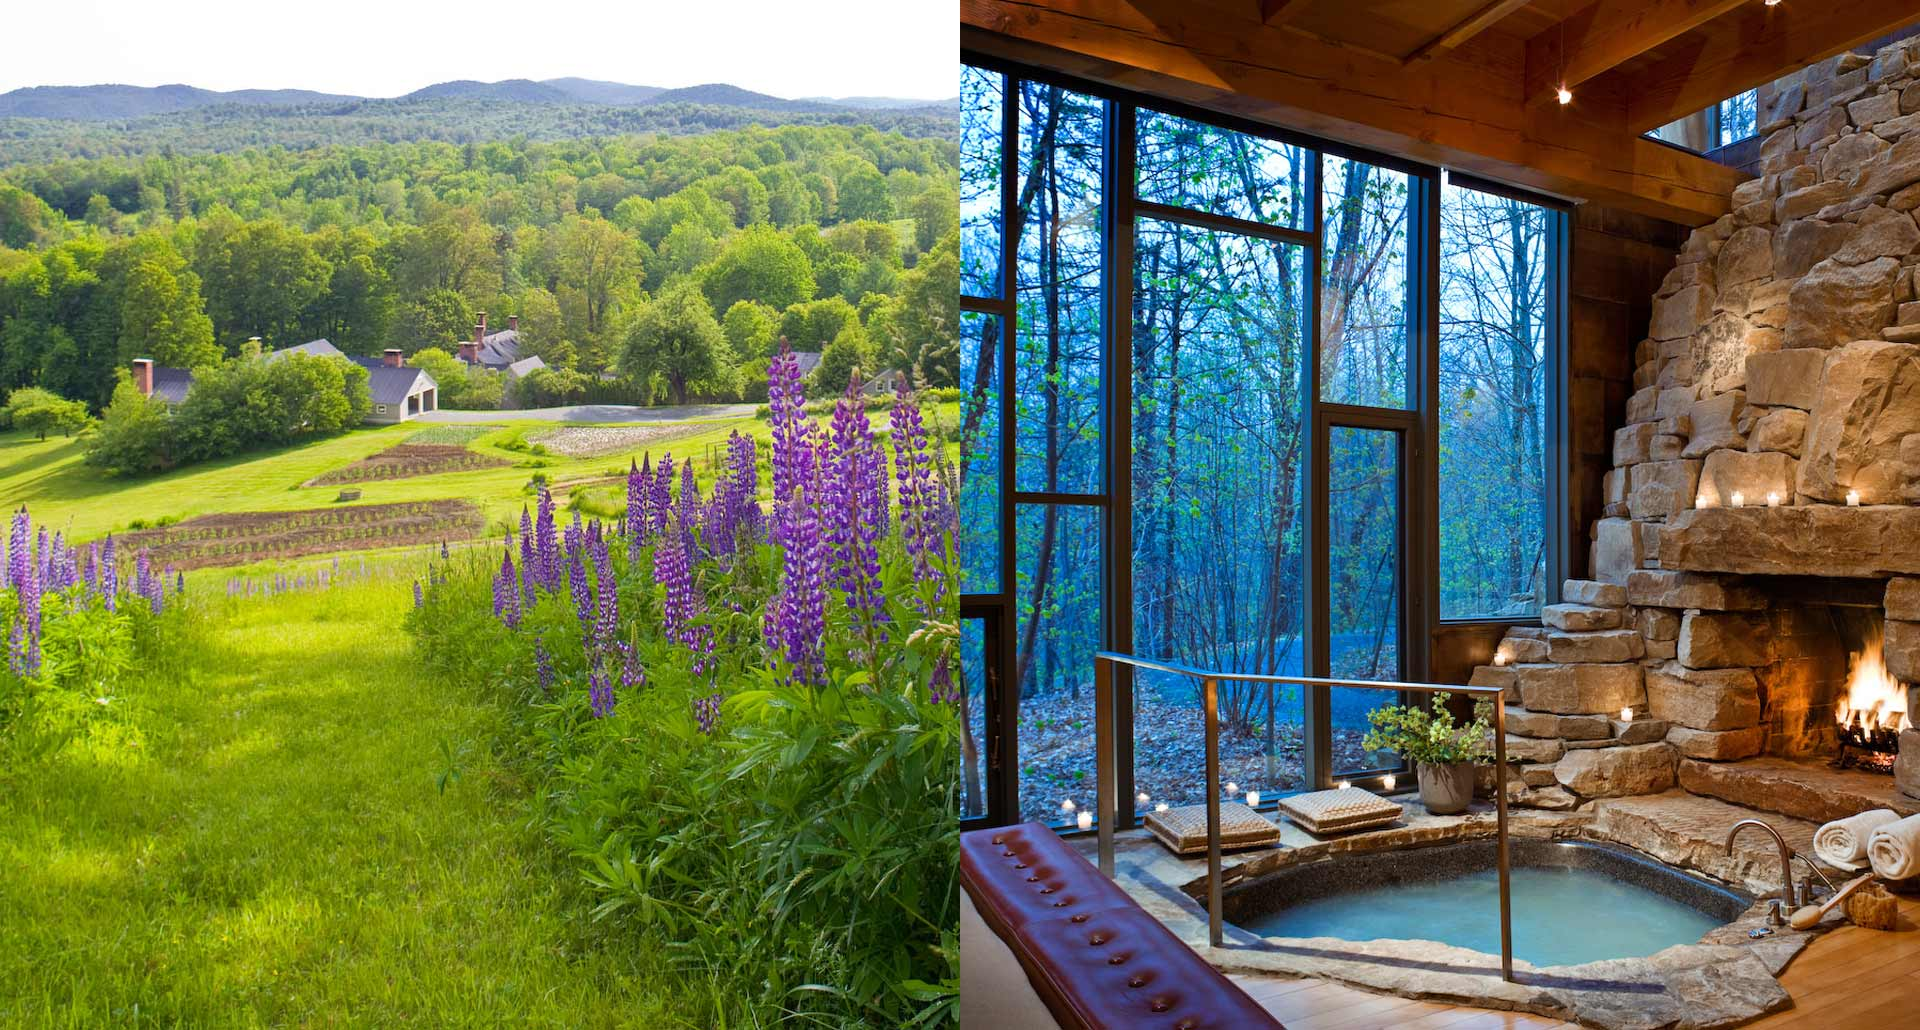 Twin Farms - romantic boutique hotel in Barnard, Vermont